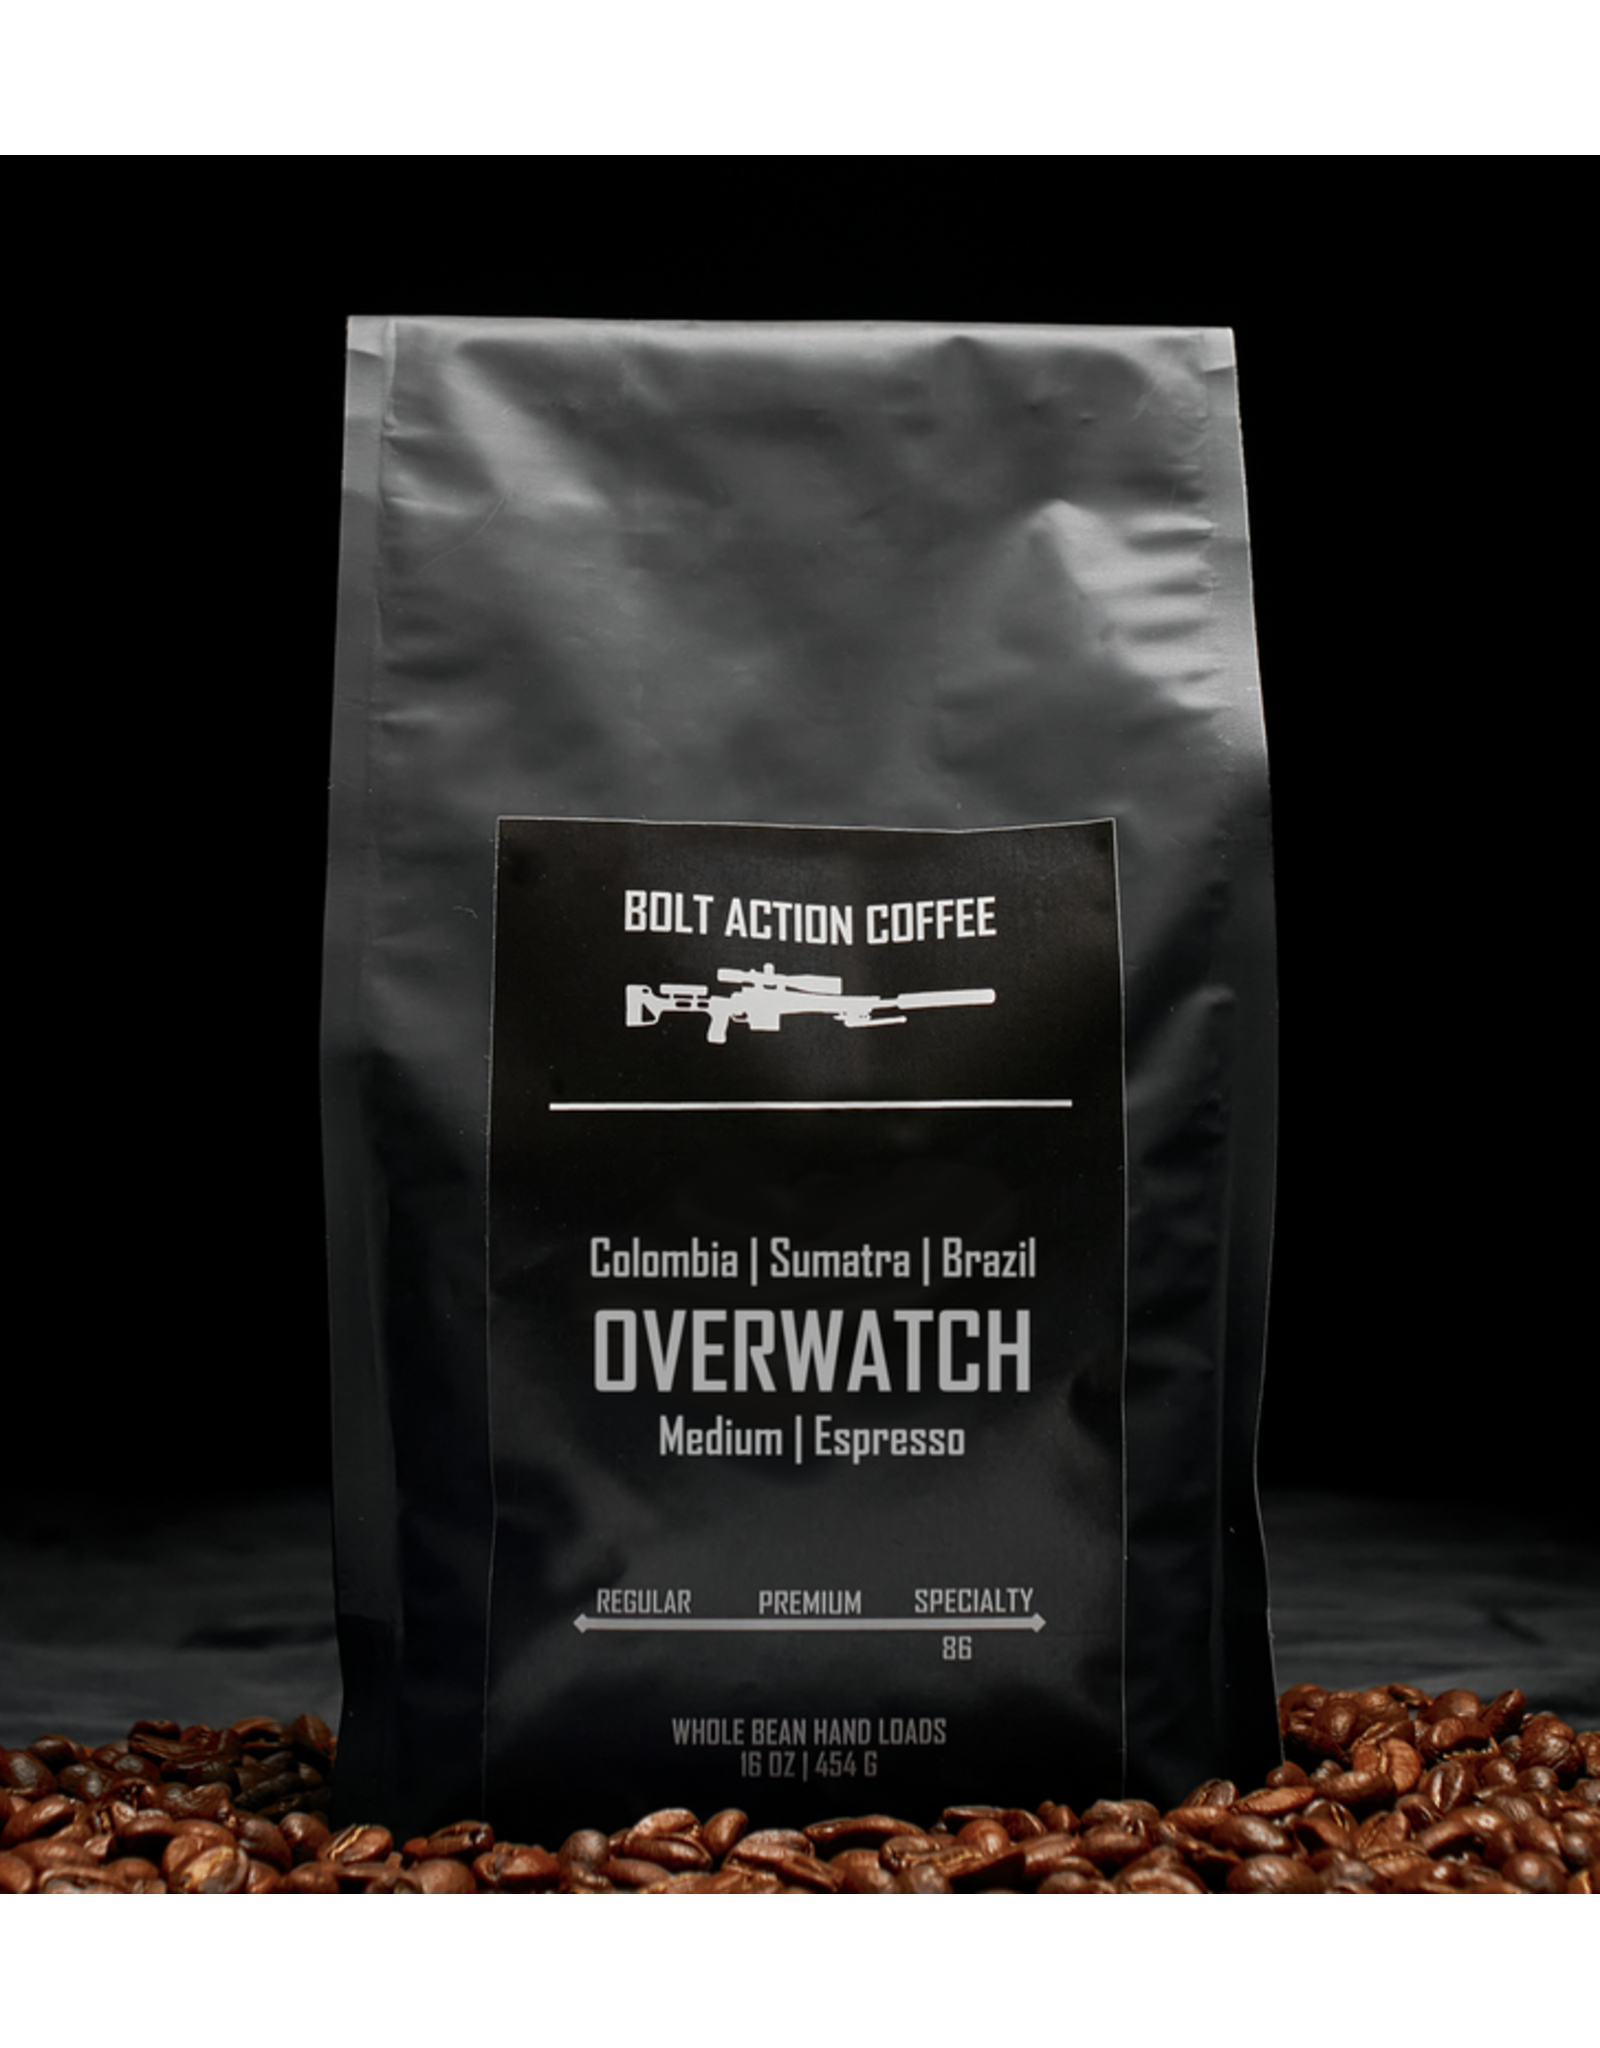 Bolt Action Coffee Bolt Action Coffee, Overwatch 1 lb